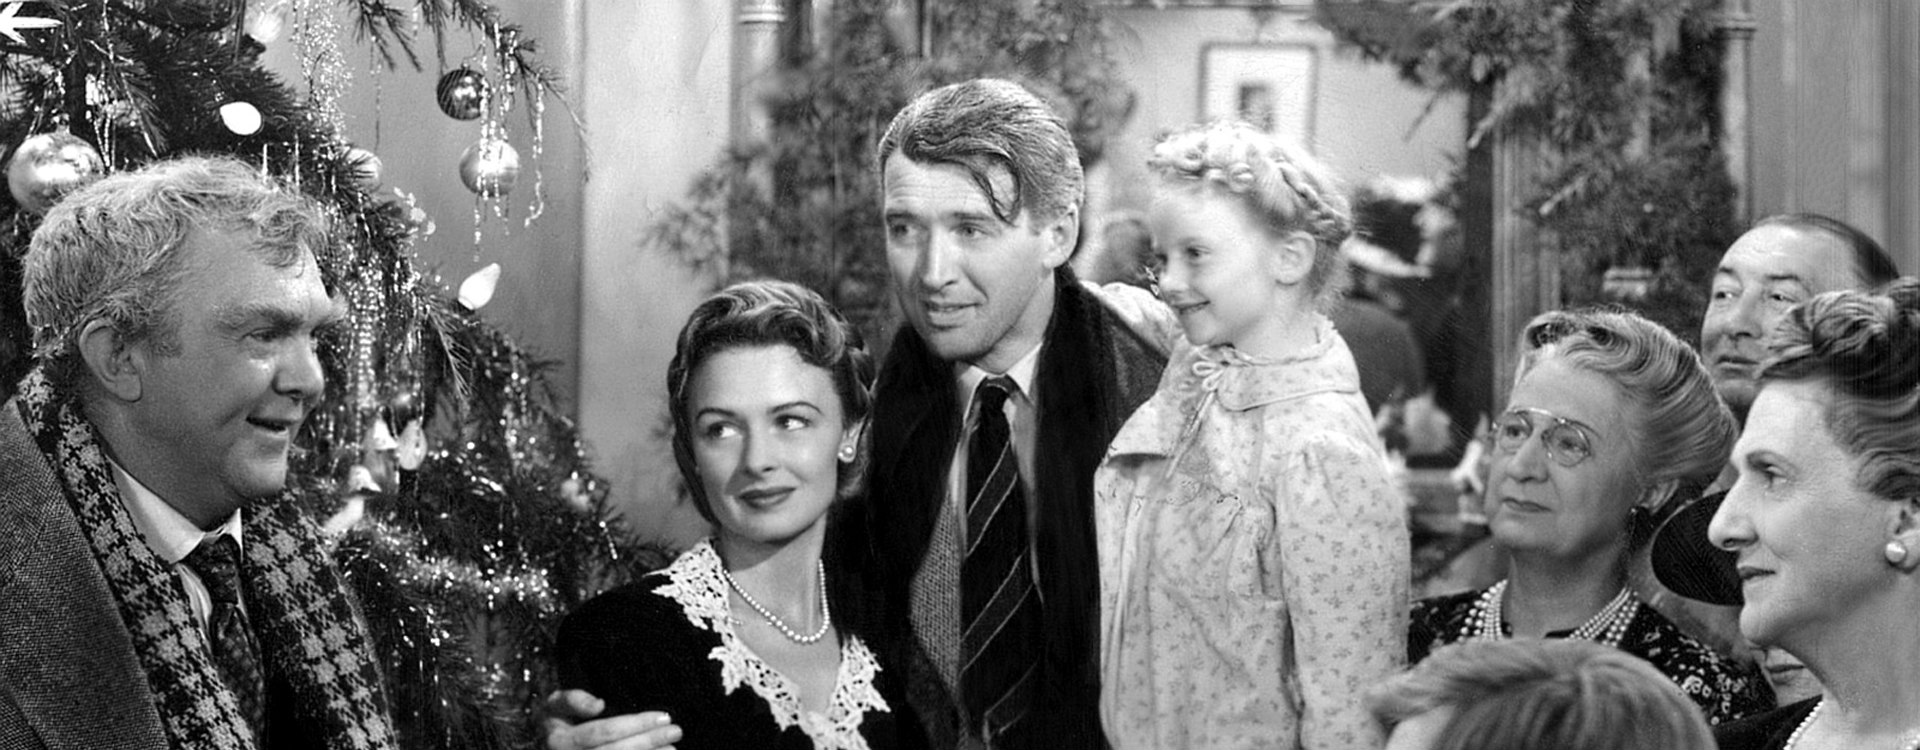 It's A Wonderful Life 2 | Beyond The Box Set | Best Movie Podcasts